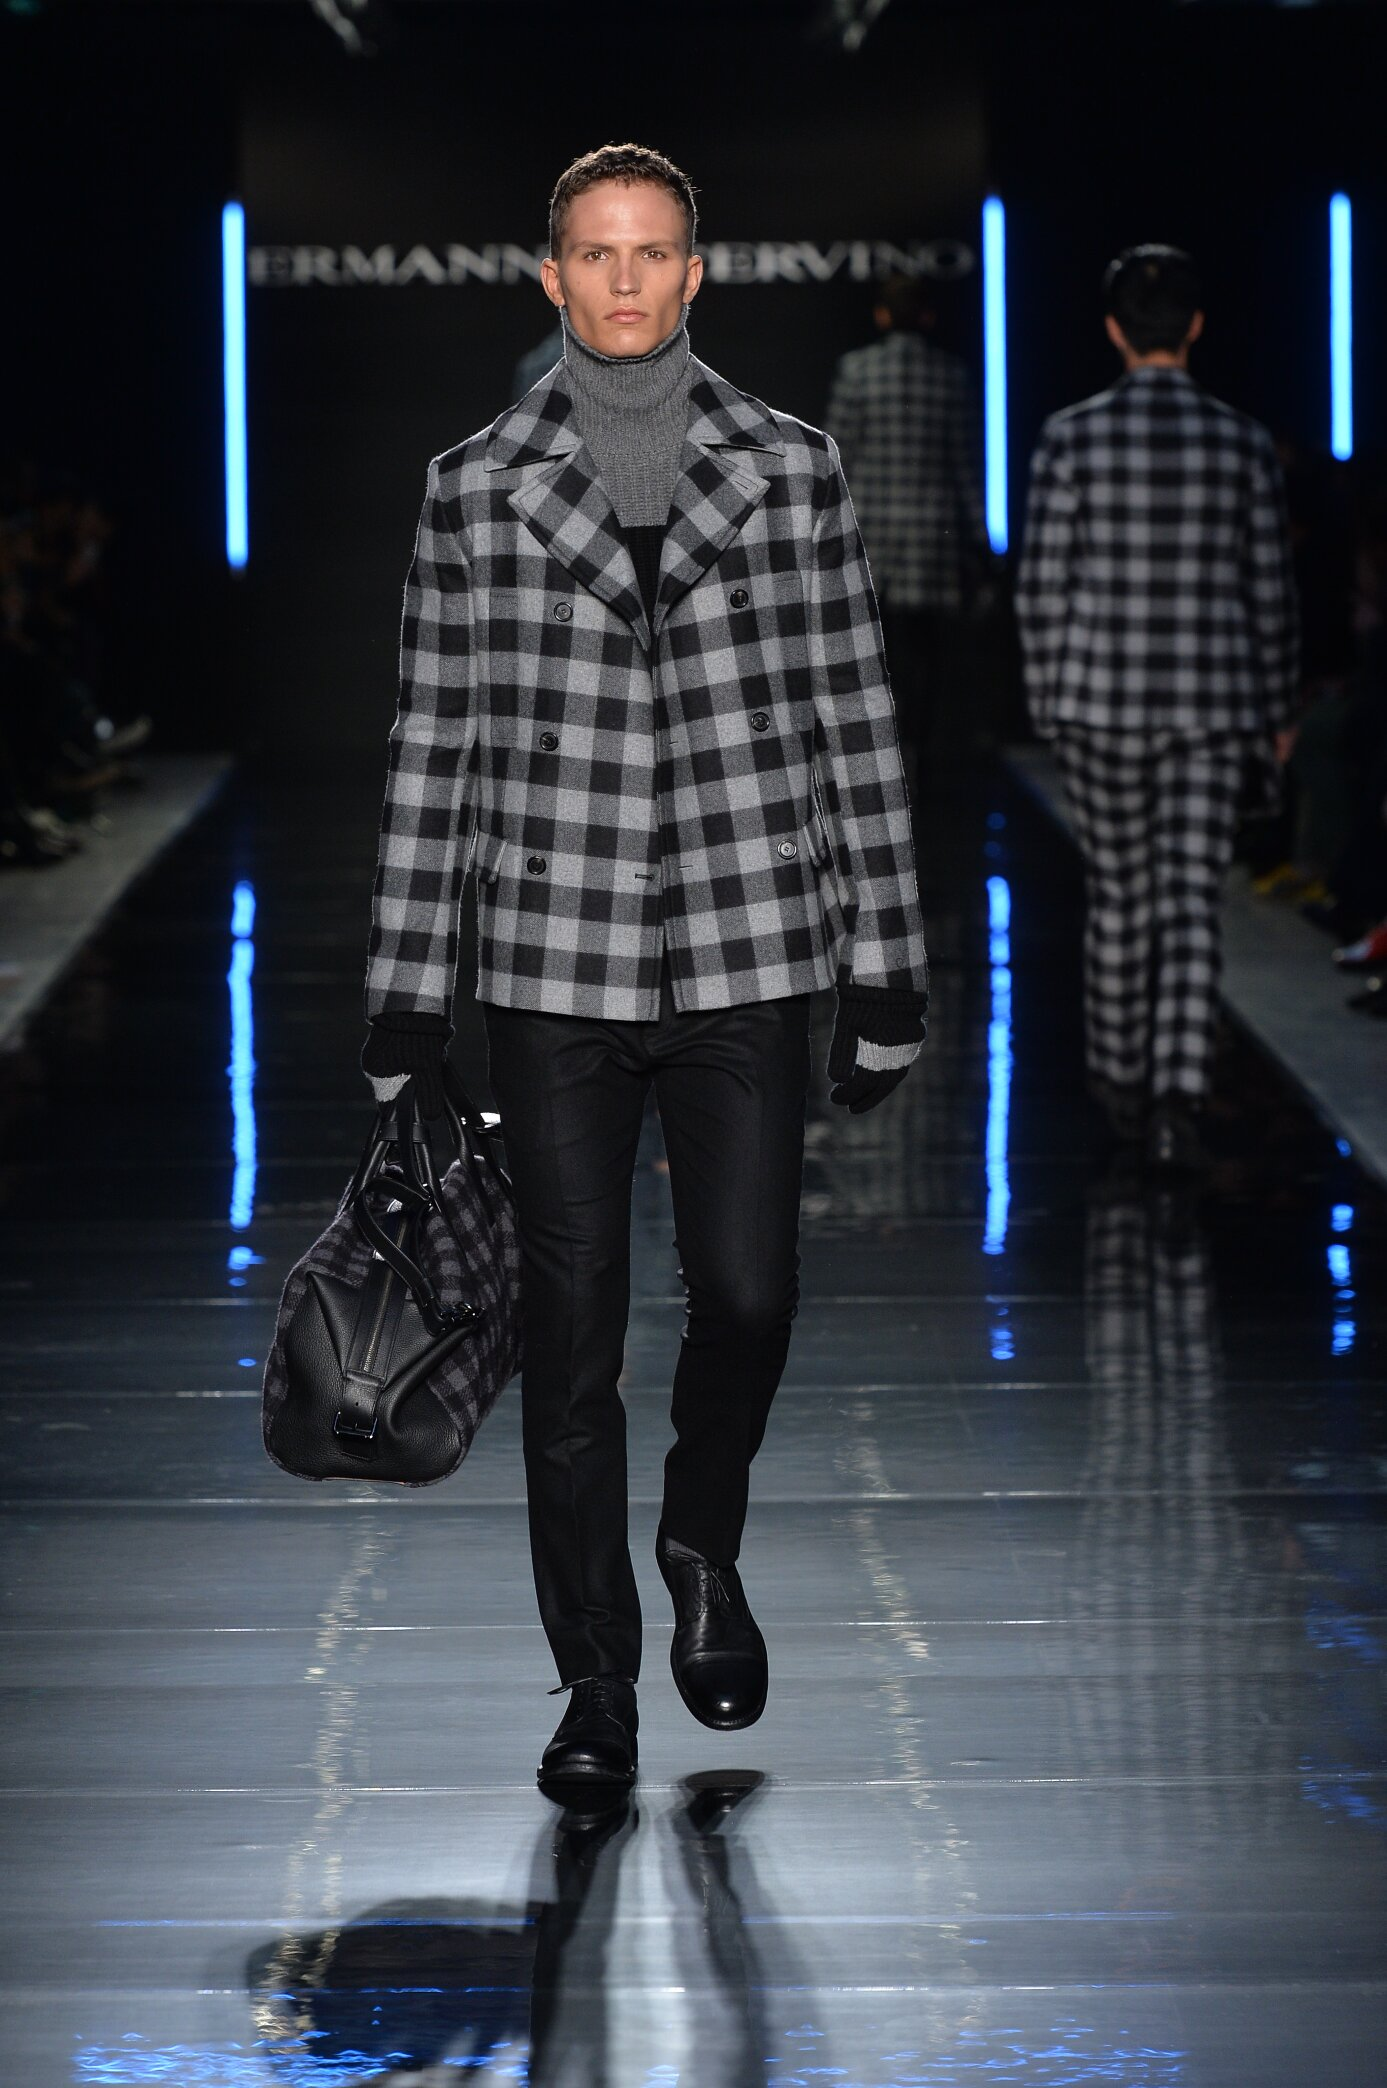 Fall Winter 2014 15 Fashion Men's Collection Ermanno Scervino